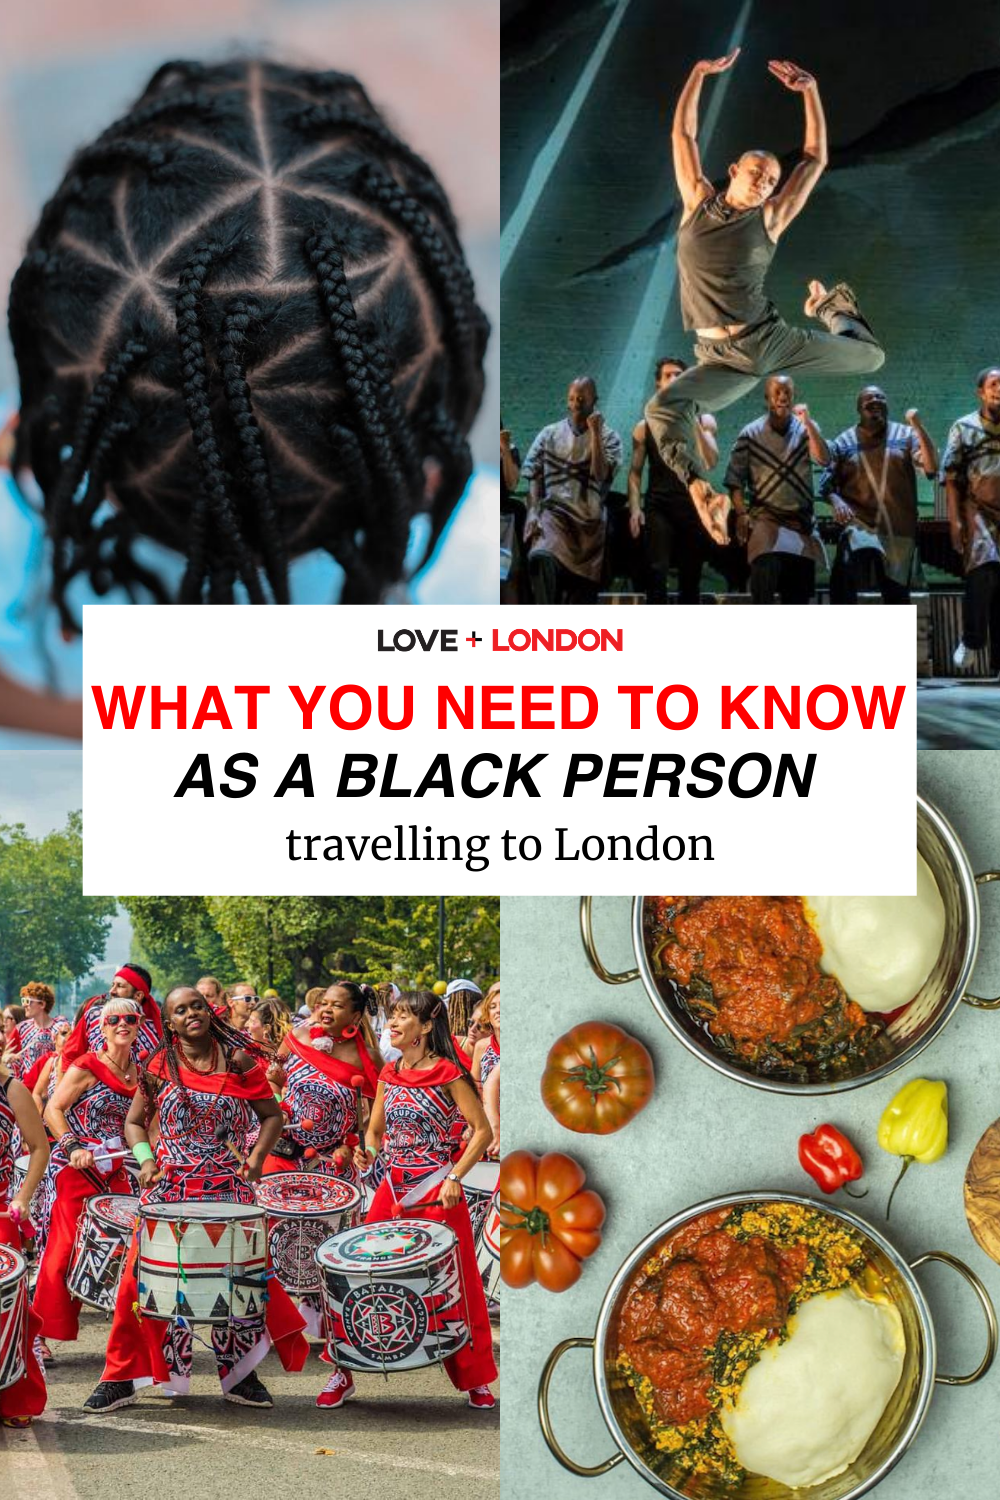 Things to Know Before Traveling to London as a Black person